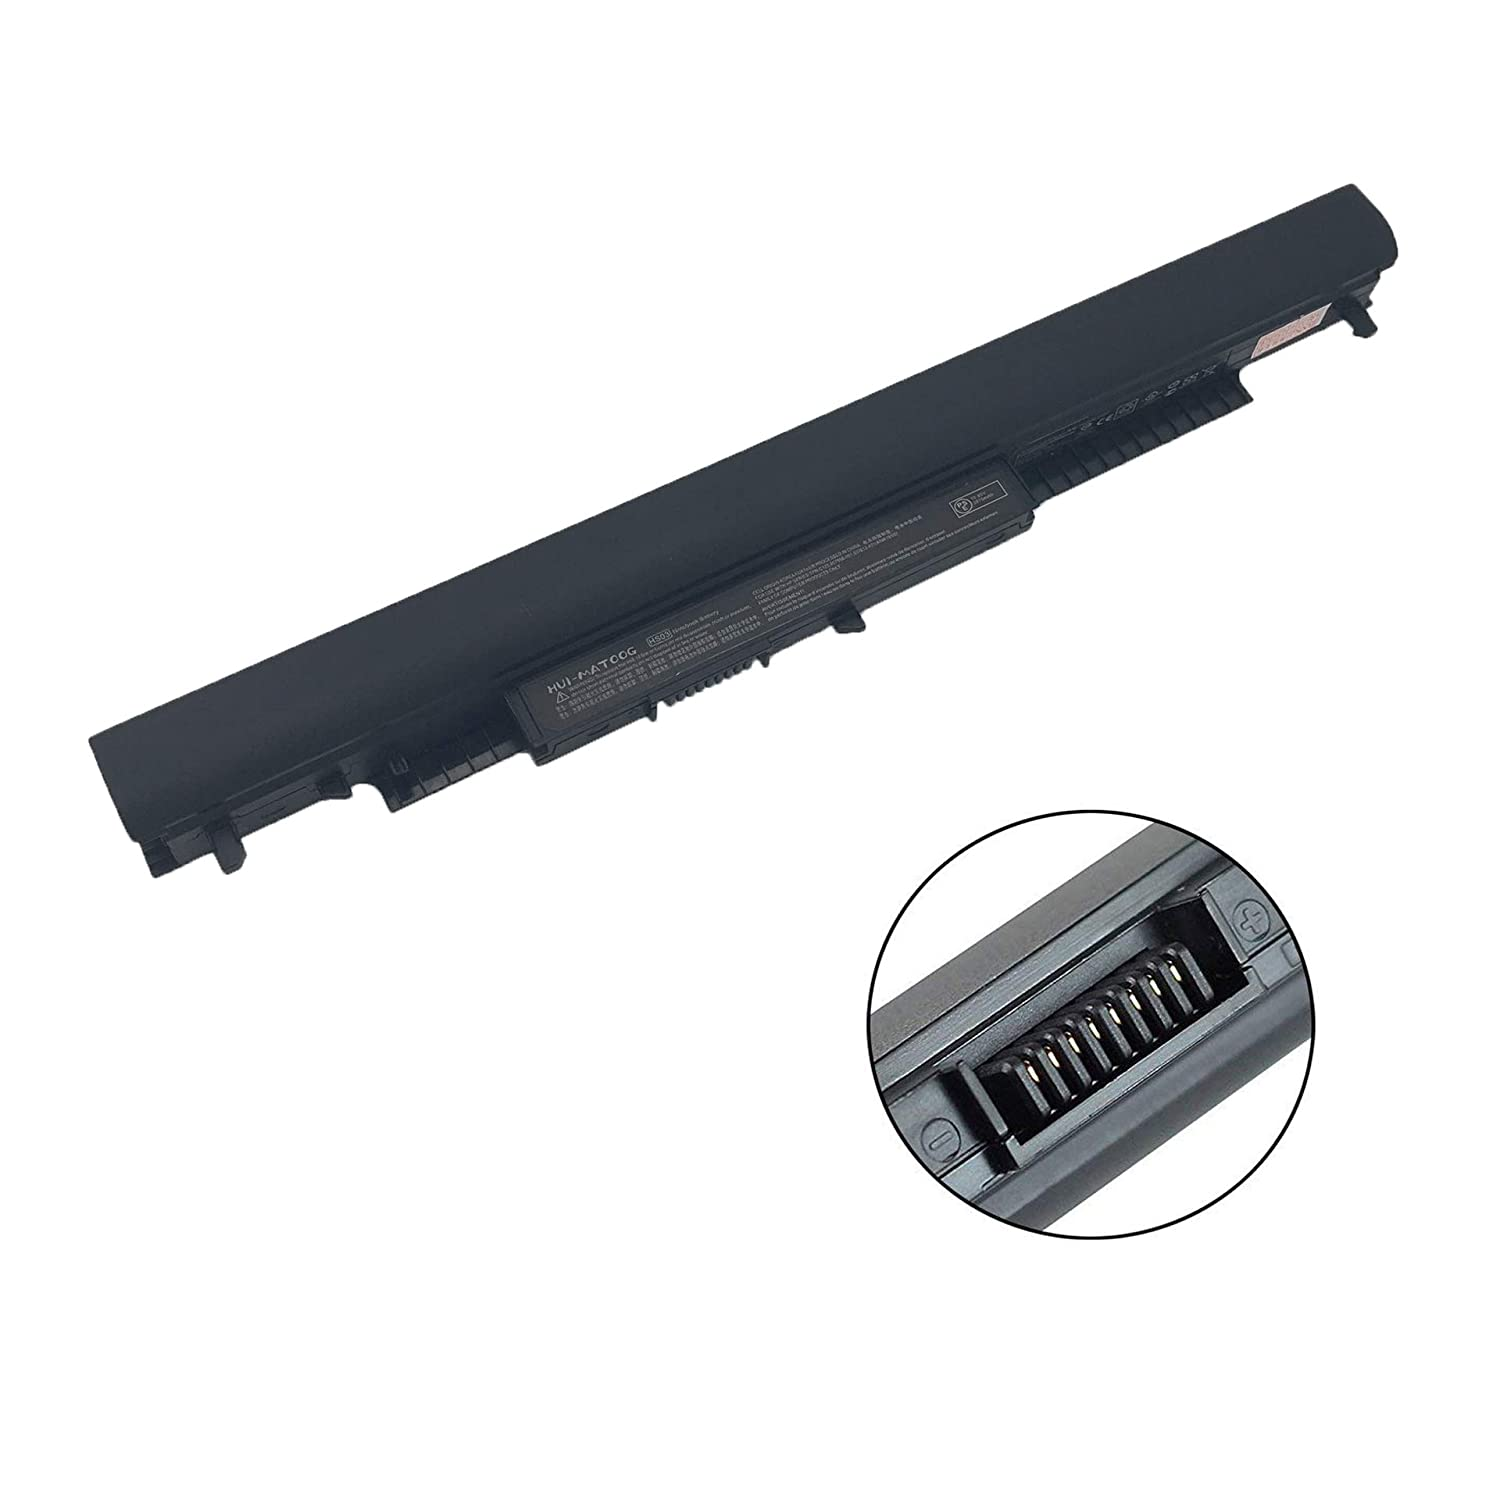 HS03 807956-001 HSTNN-LB6U Notebook Battery Replacement for Hp Pavilion 15-AFl4CA 14-AM038CA 15-AC157CI 15AC121DX 15-AF124AU 10.95V 2670mAh